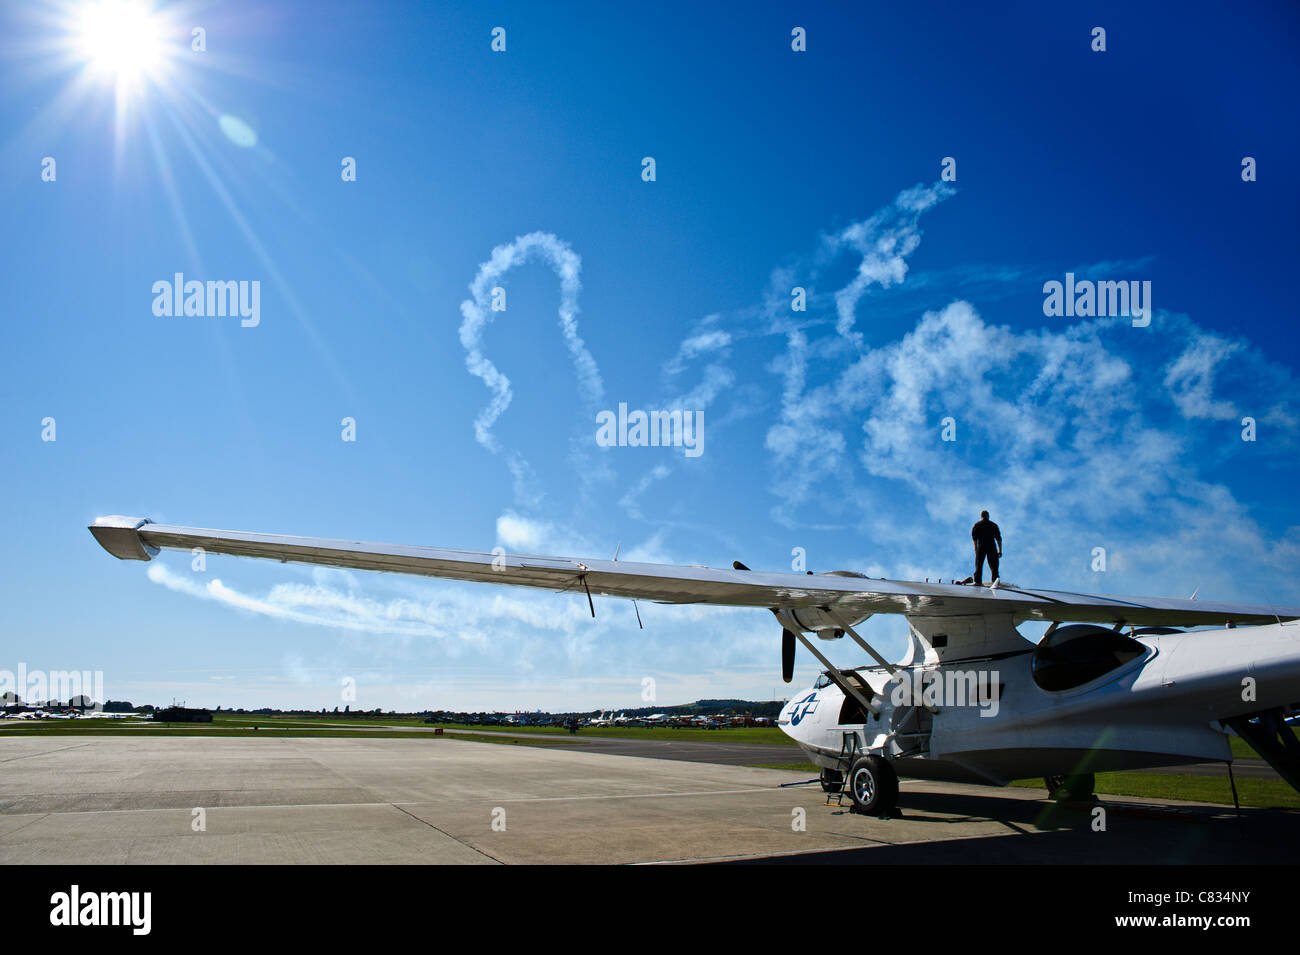 20/08/2010. Shoreham, Uk. Silhouette of the pilot against a bright sun as he walks along the wing of a Catalina - Stock Image